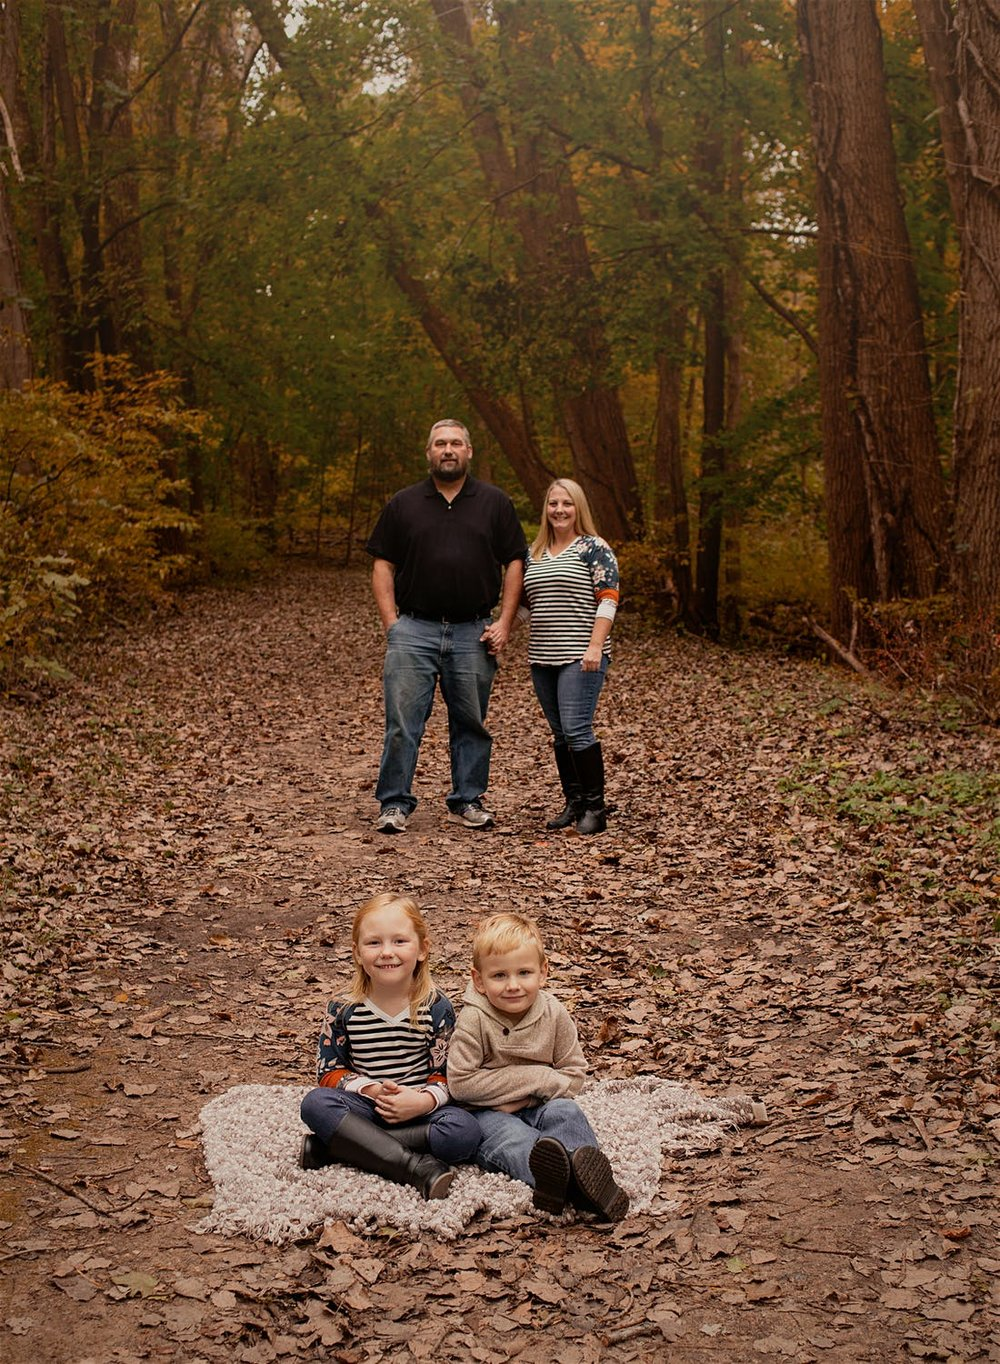 St. Joseph Michigan Fall Family Photography23.jpg